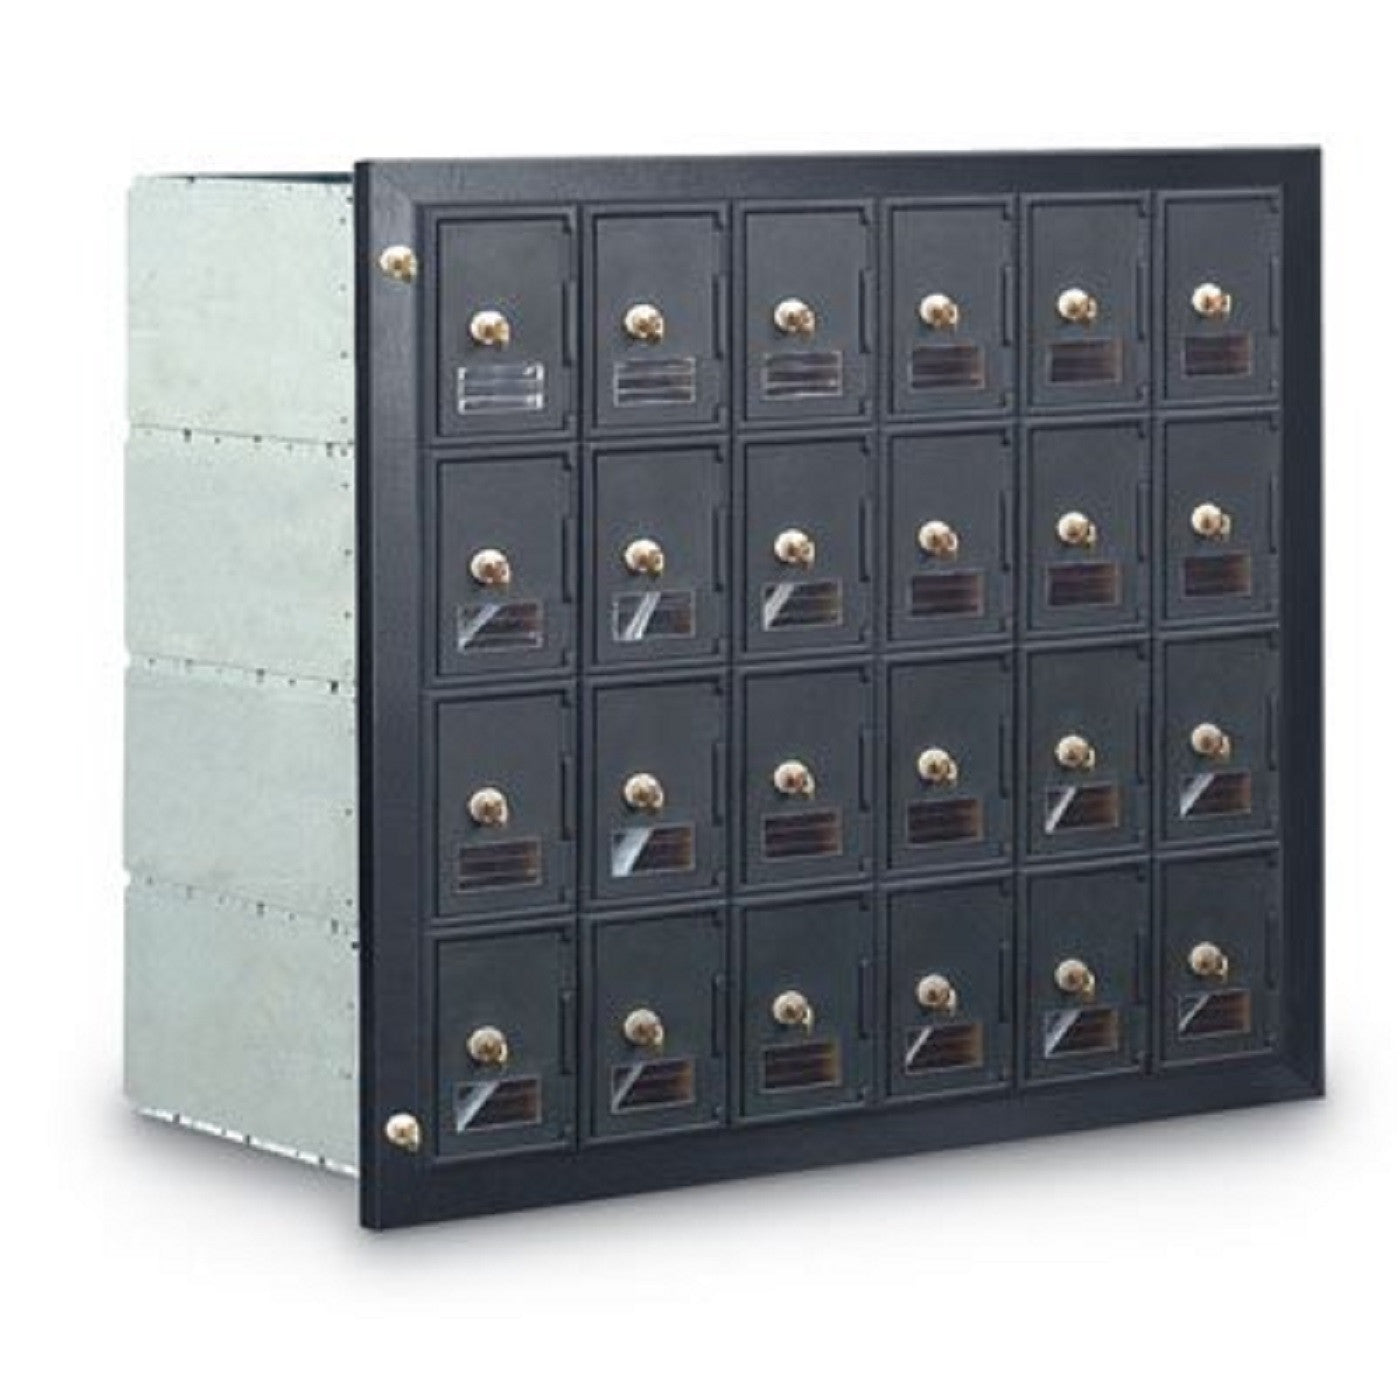 Postal Products Unlimited 24-Door Front Loading Guardian Module Mailbox  sc 1 st  Prime Mailboxes & Postal Products 24-Door Front Loading Guardian Module Mailbox ...